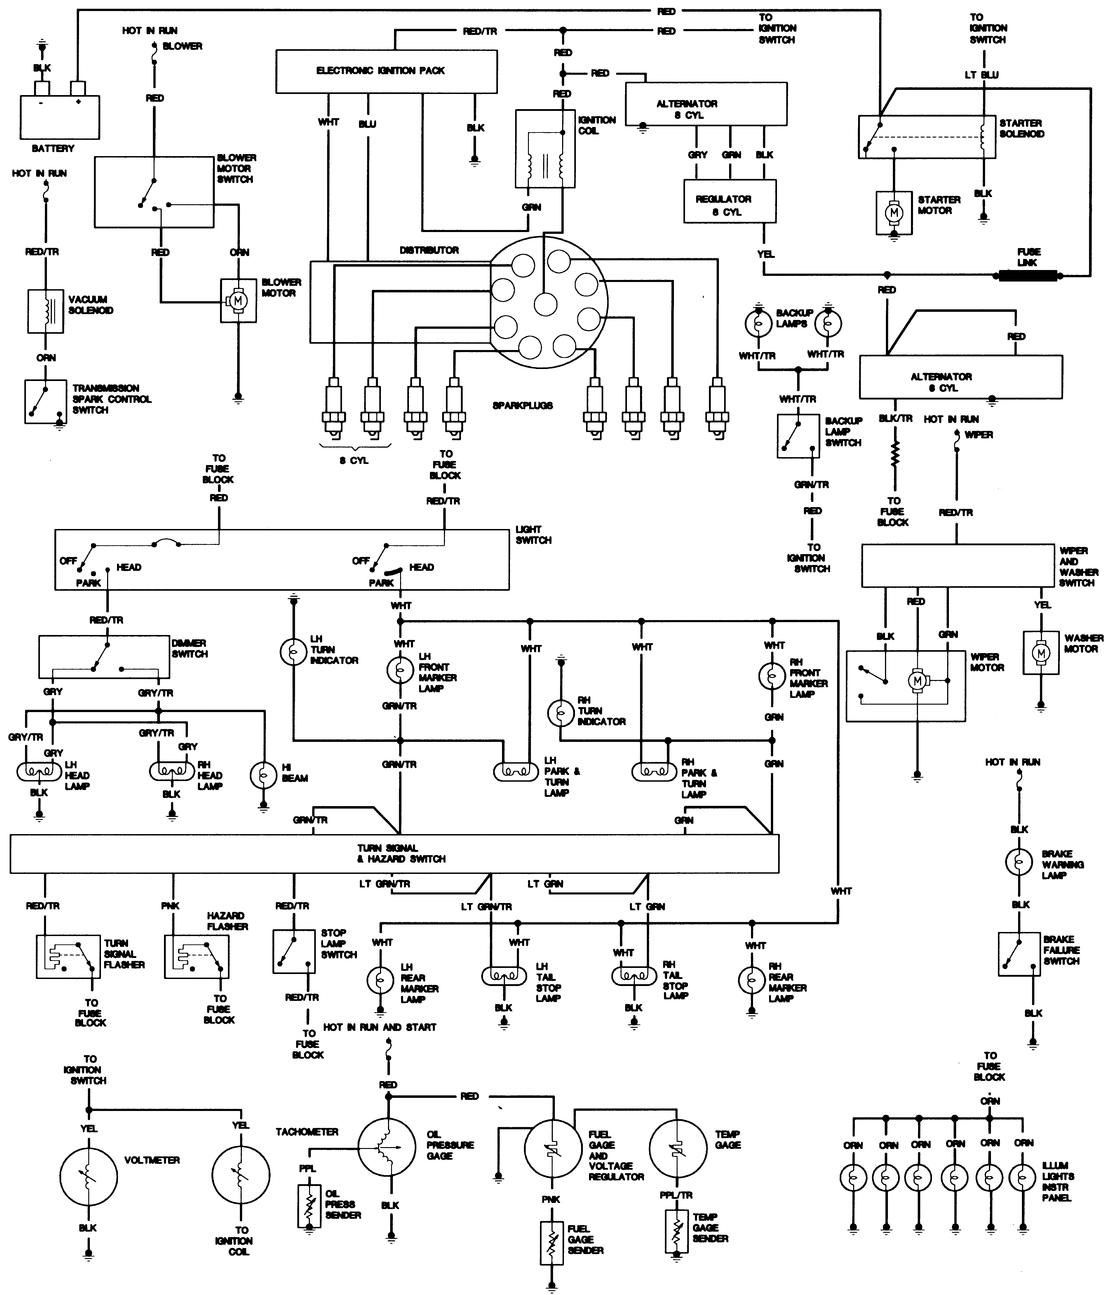 83 jeep cj7 wiring diagram